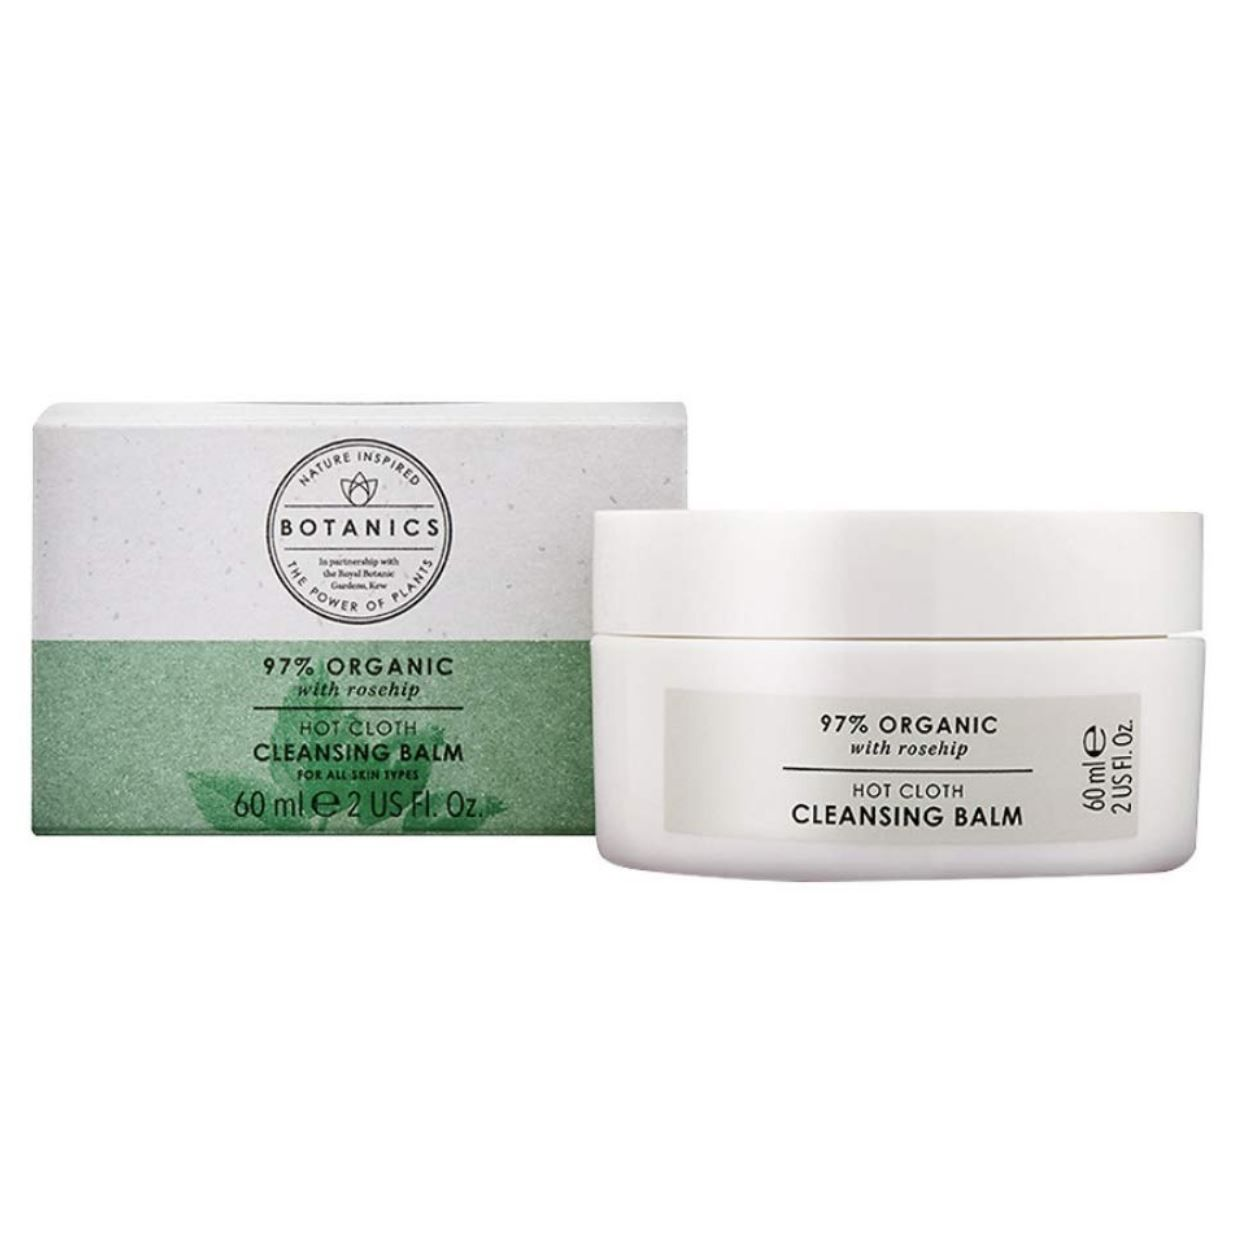 97% Organic Botanics Hot Cloth Cleansing Balm